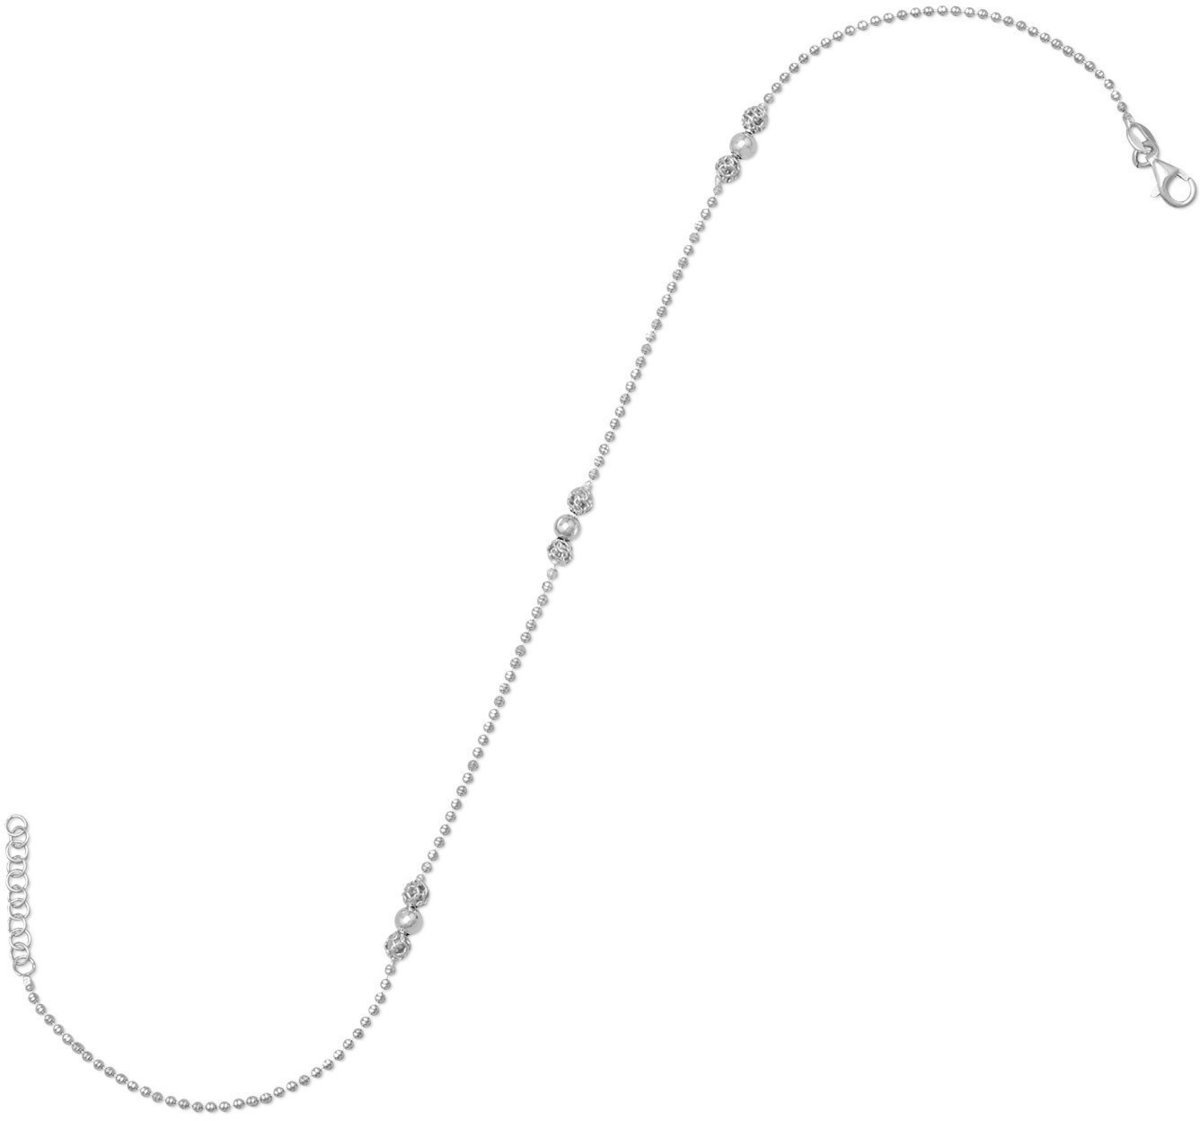 "11"" + 1"" Camilla Chain Anklet with Beads 925 Sterling Silver"